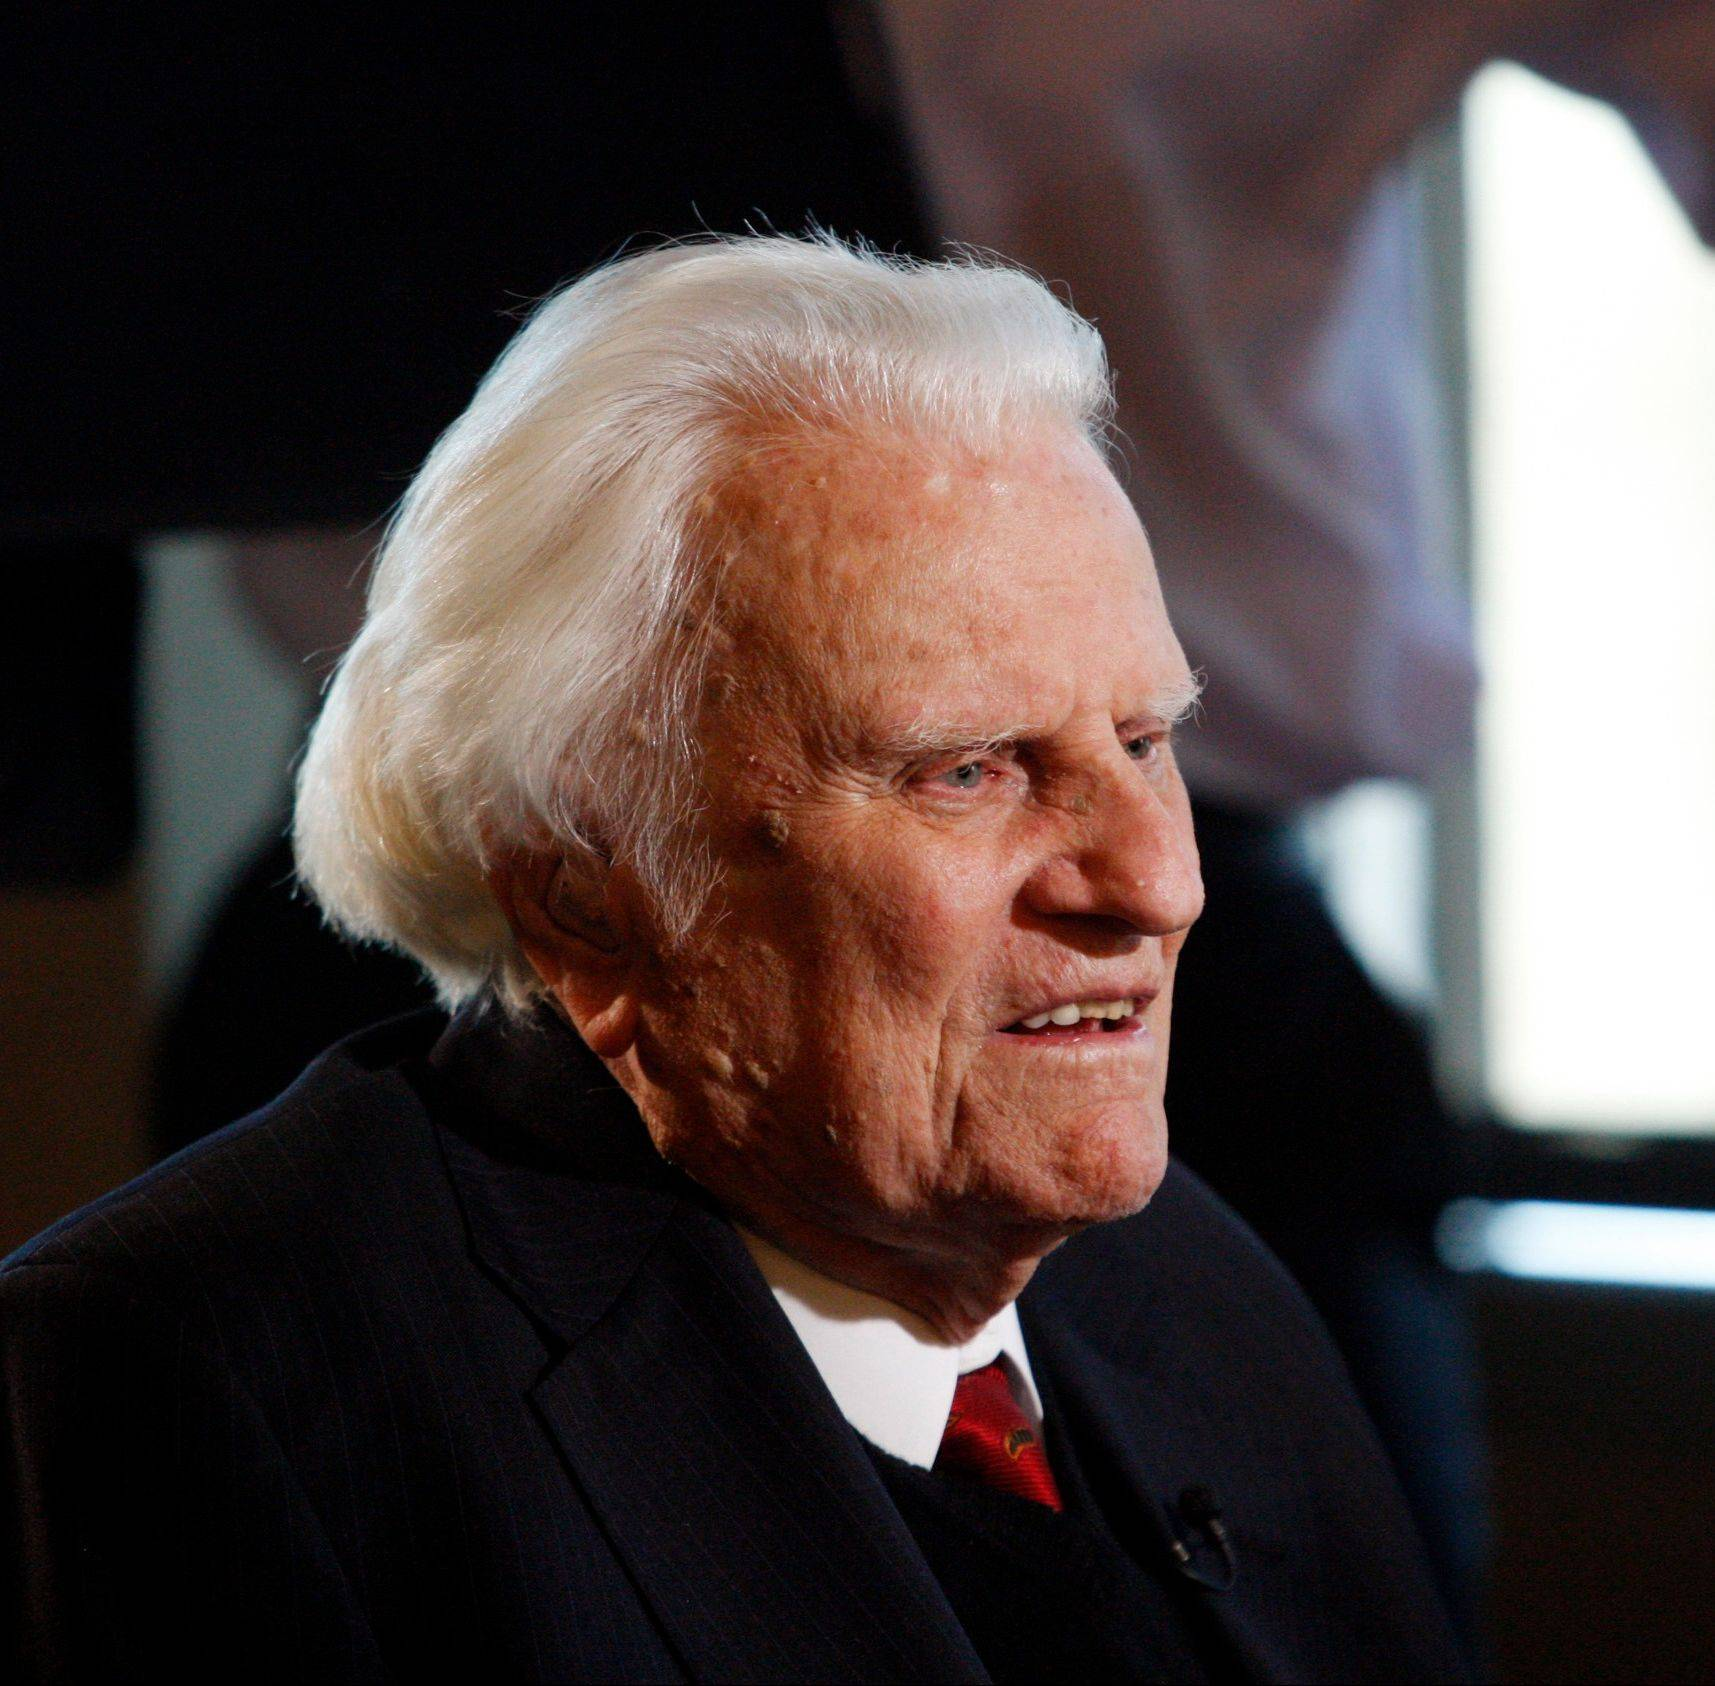 Evangelist Billy Graham, 93, has been admitted to a North Carolina hospital for an infection in his lungs.